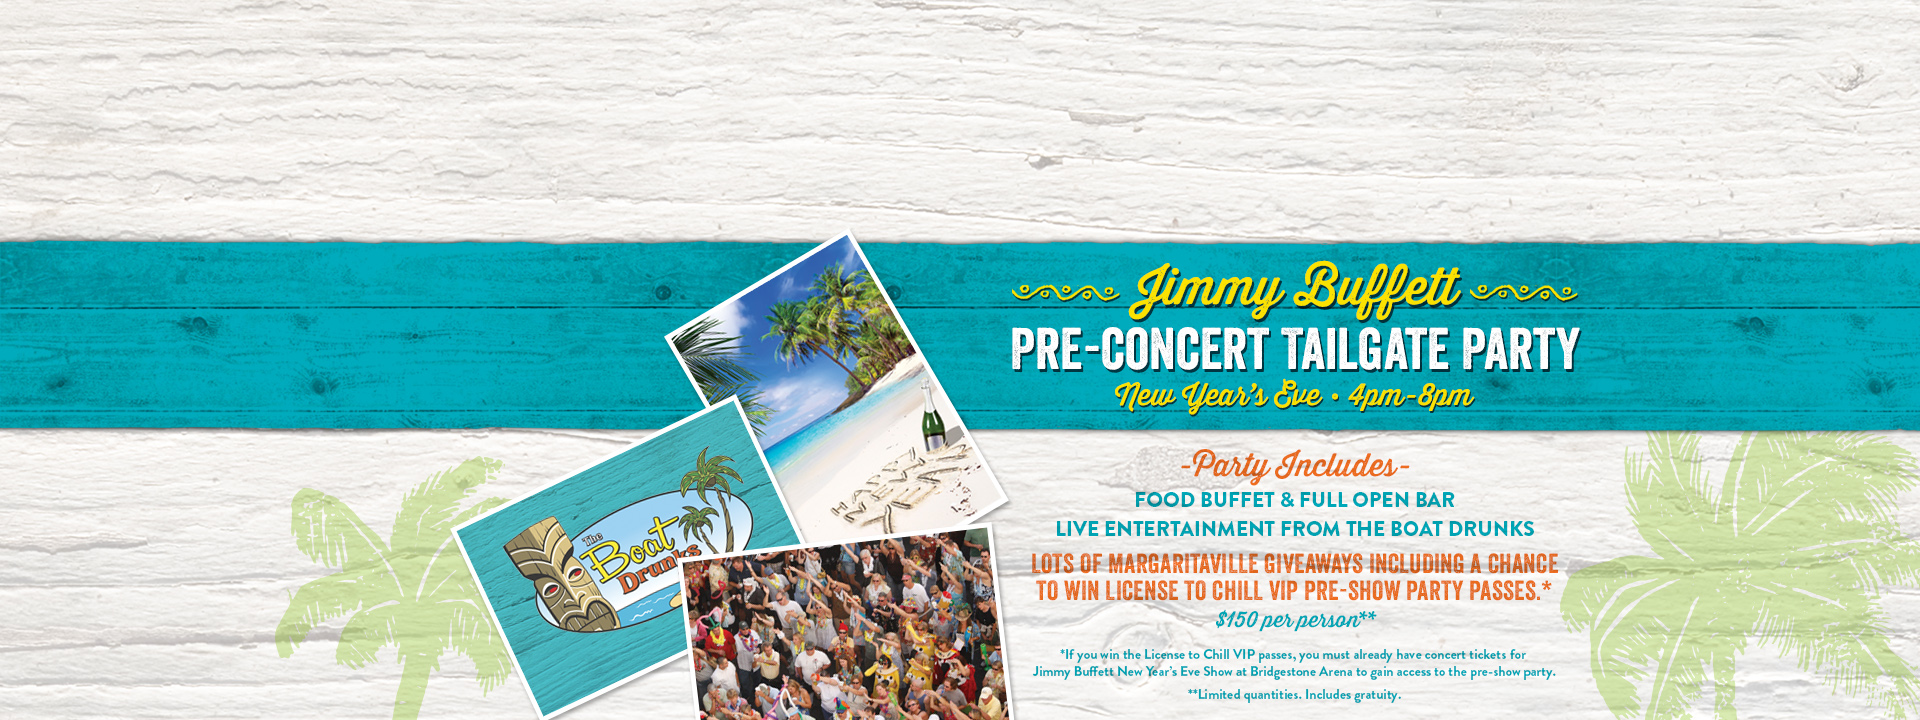 Jimmy Buffett Pre-Concert Tailgate Party